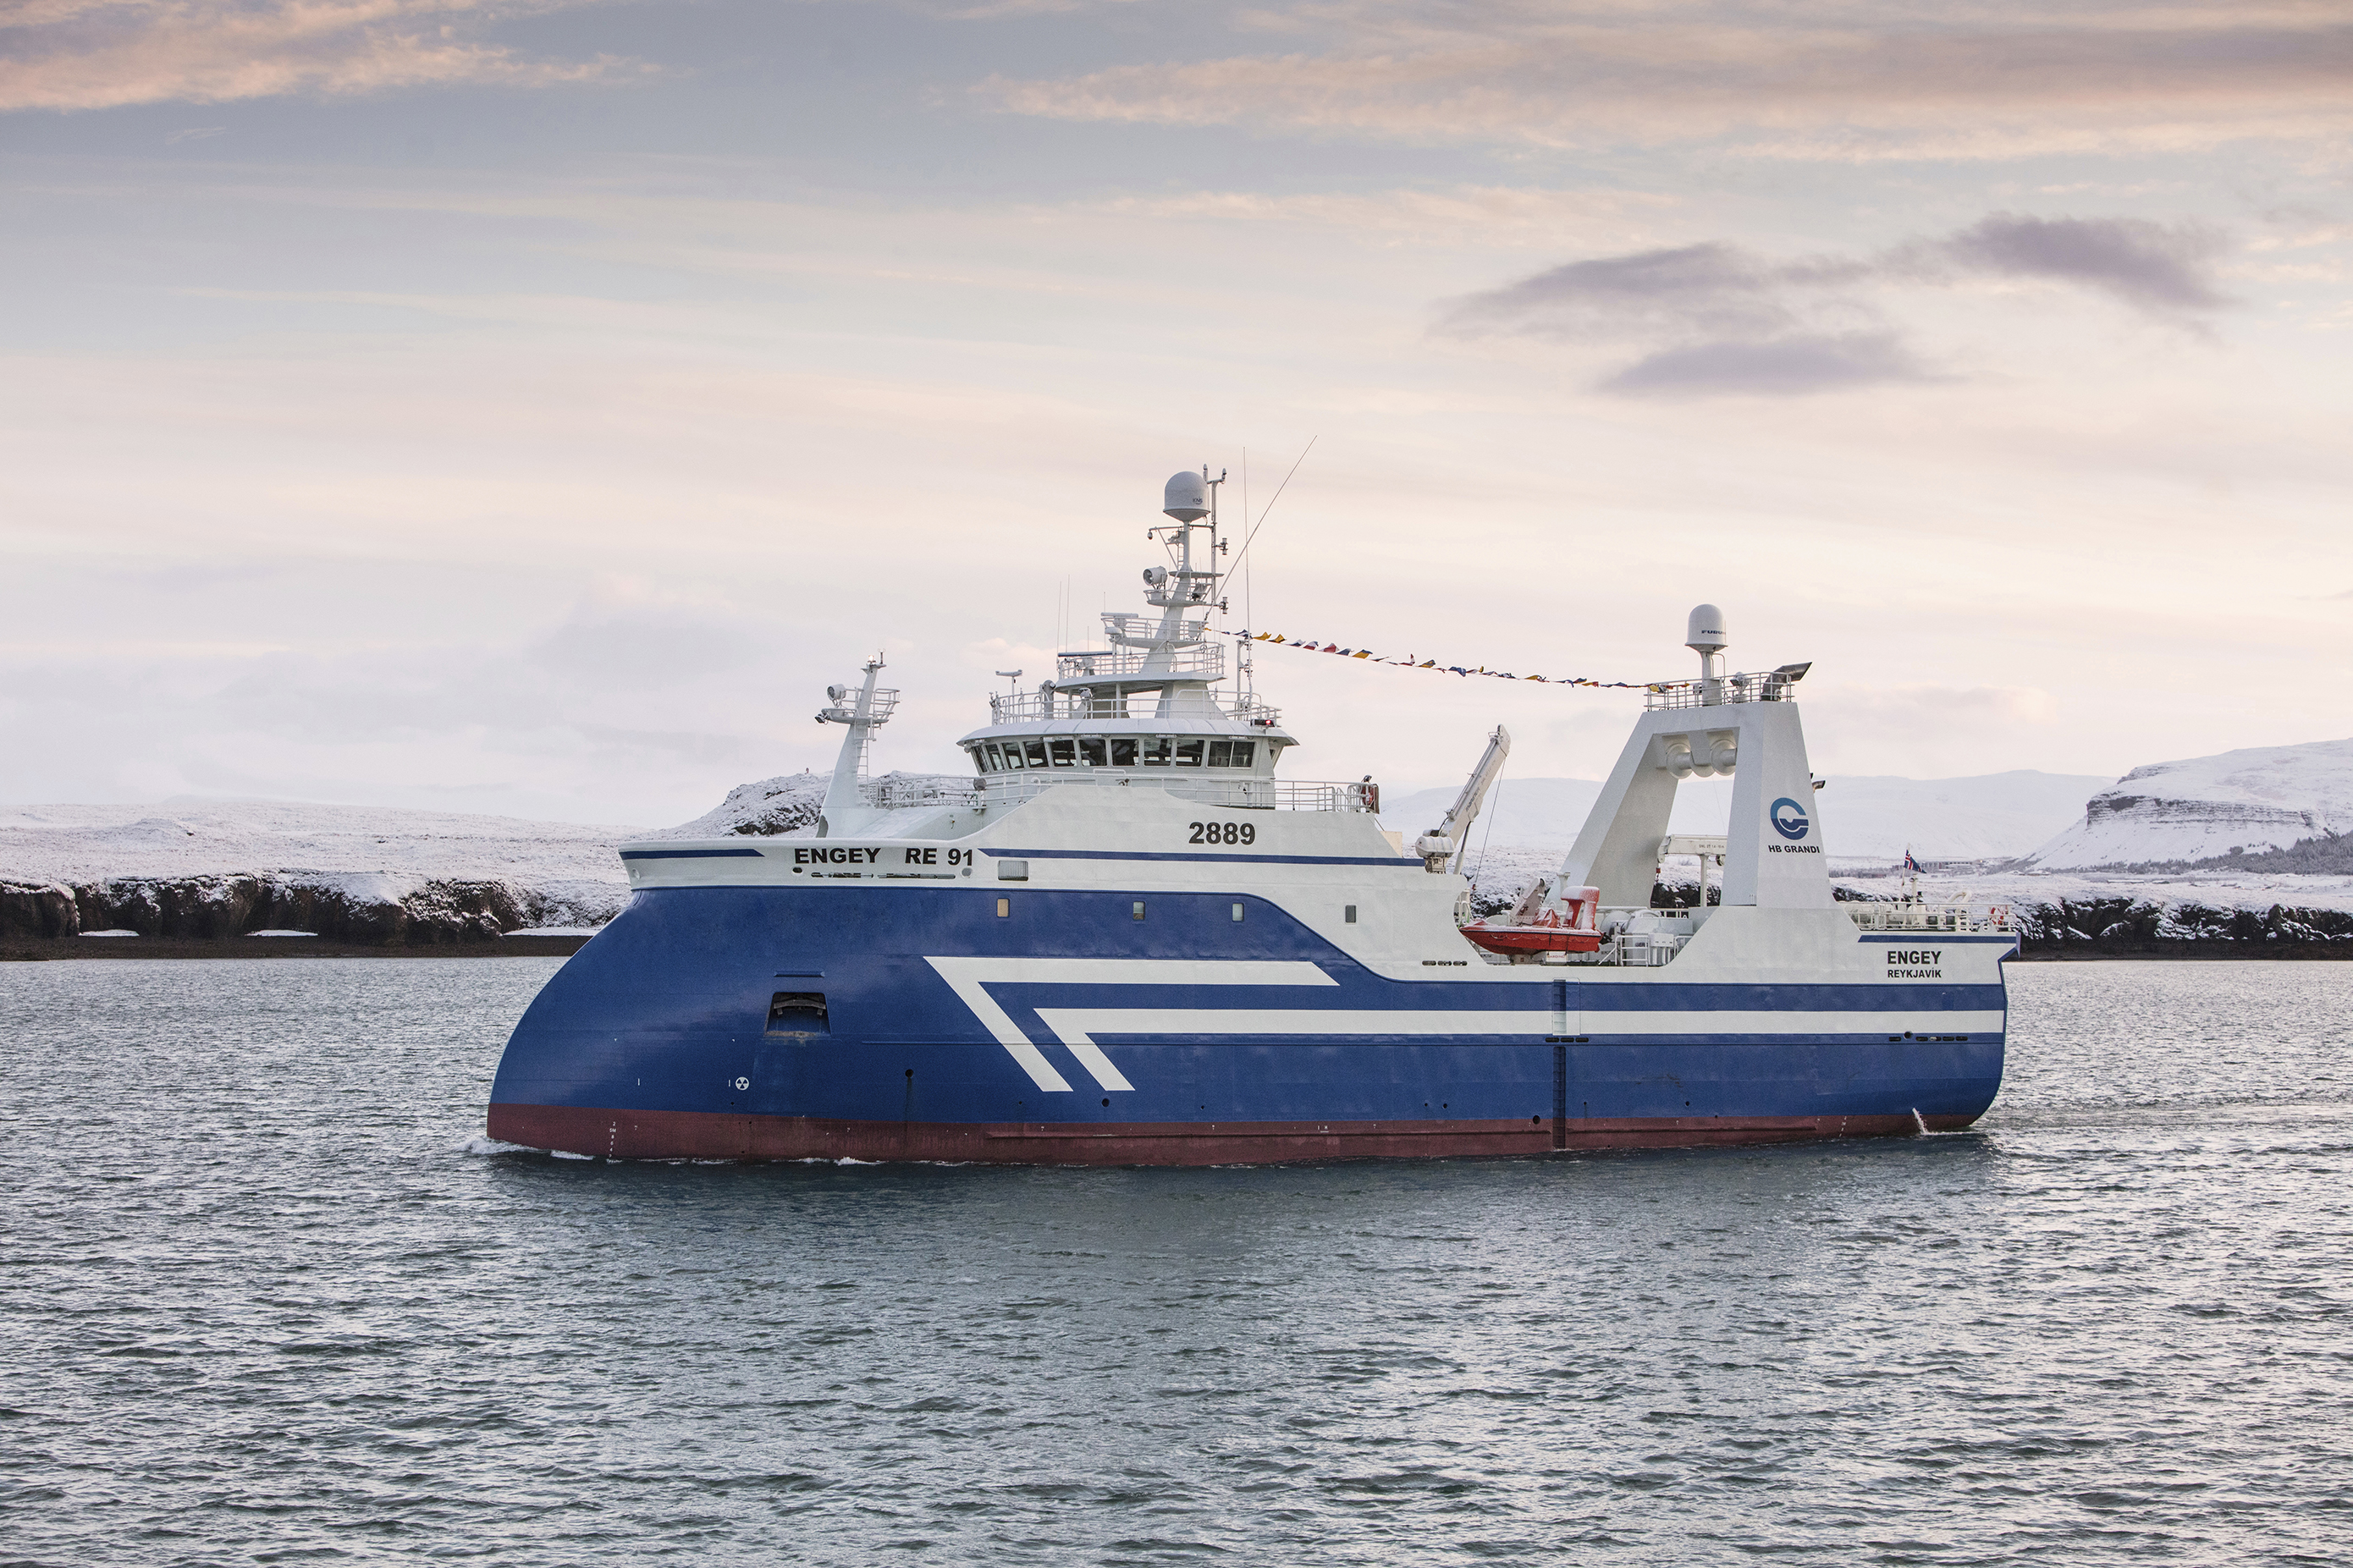 HB Grandi's Engey RE 91 arrived in Iceland from the Celiktrans shipyard in Istanbul. Skaginn 3X to provide fully automatic fish holding and processing deck.